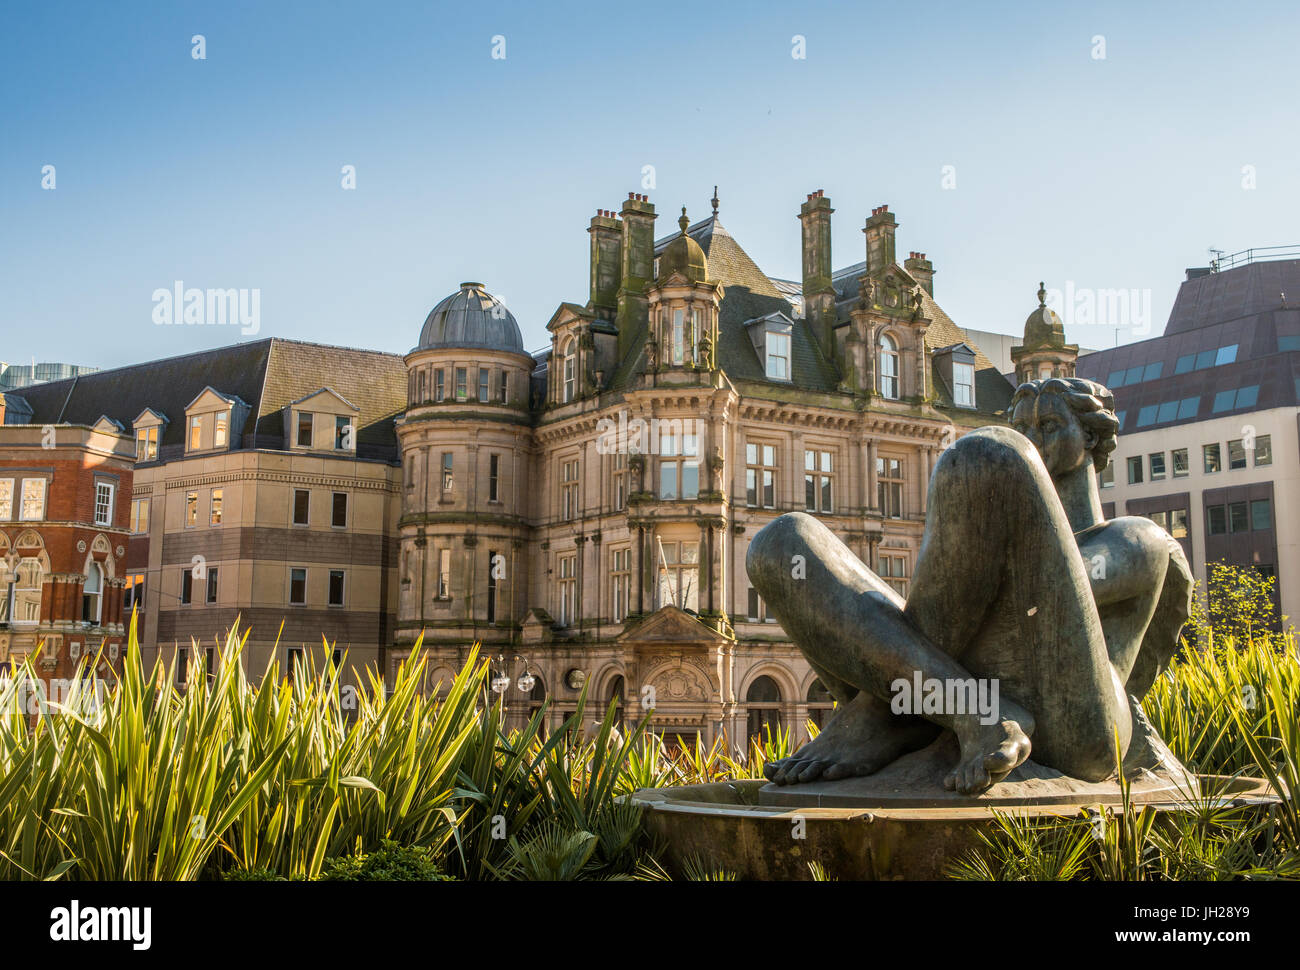 Victoria Square, a pedestrianised public square in Birmingham, England, United Kingdom, Europe - Stock Image